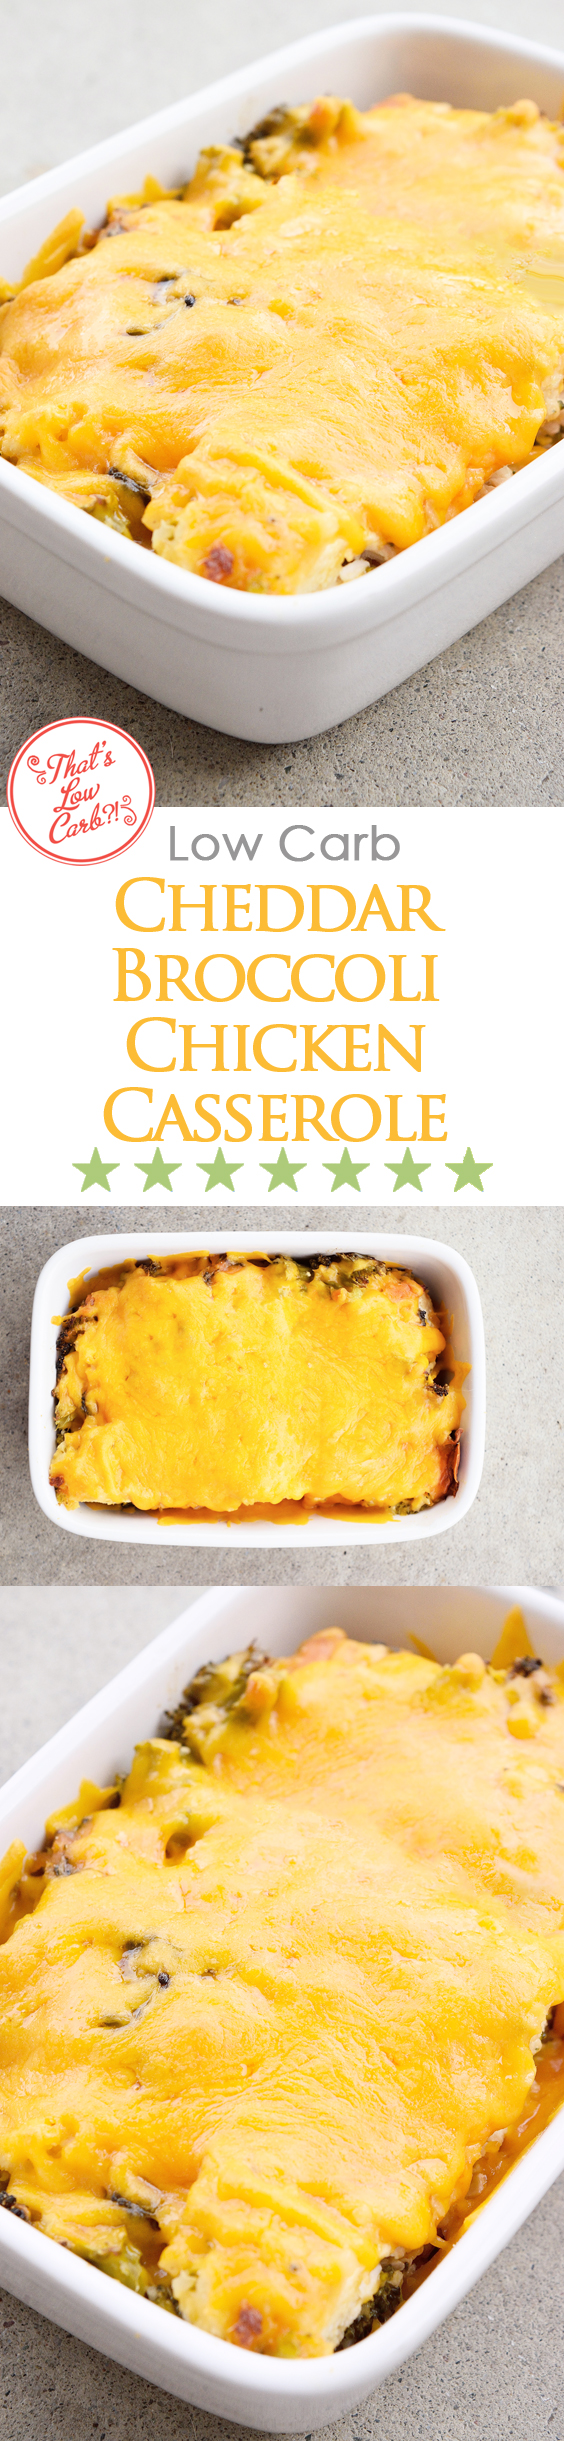 Low Carb Cheddar Broccoli Chicken Casserole Recipe Pin for Pinterest. Long pin showing the casserole from three different angles.